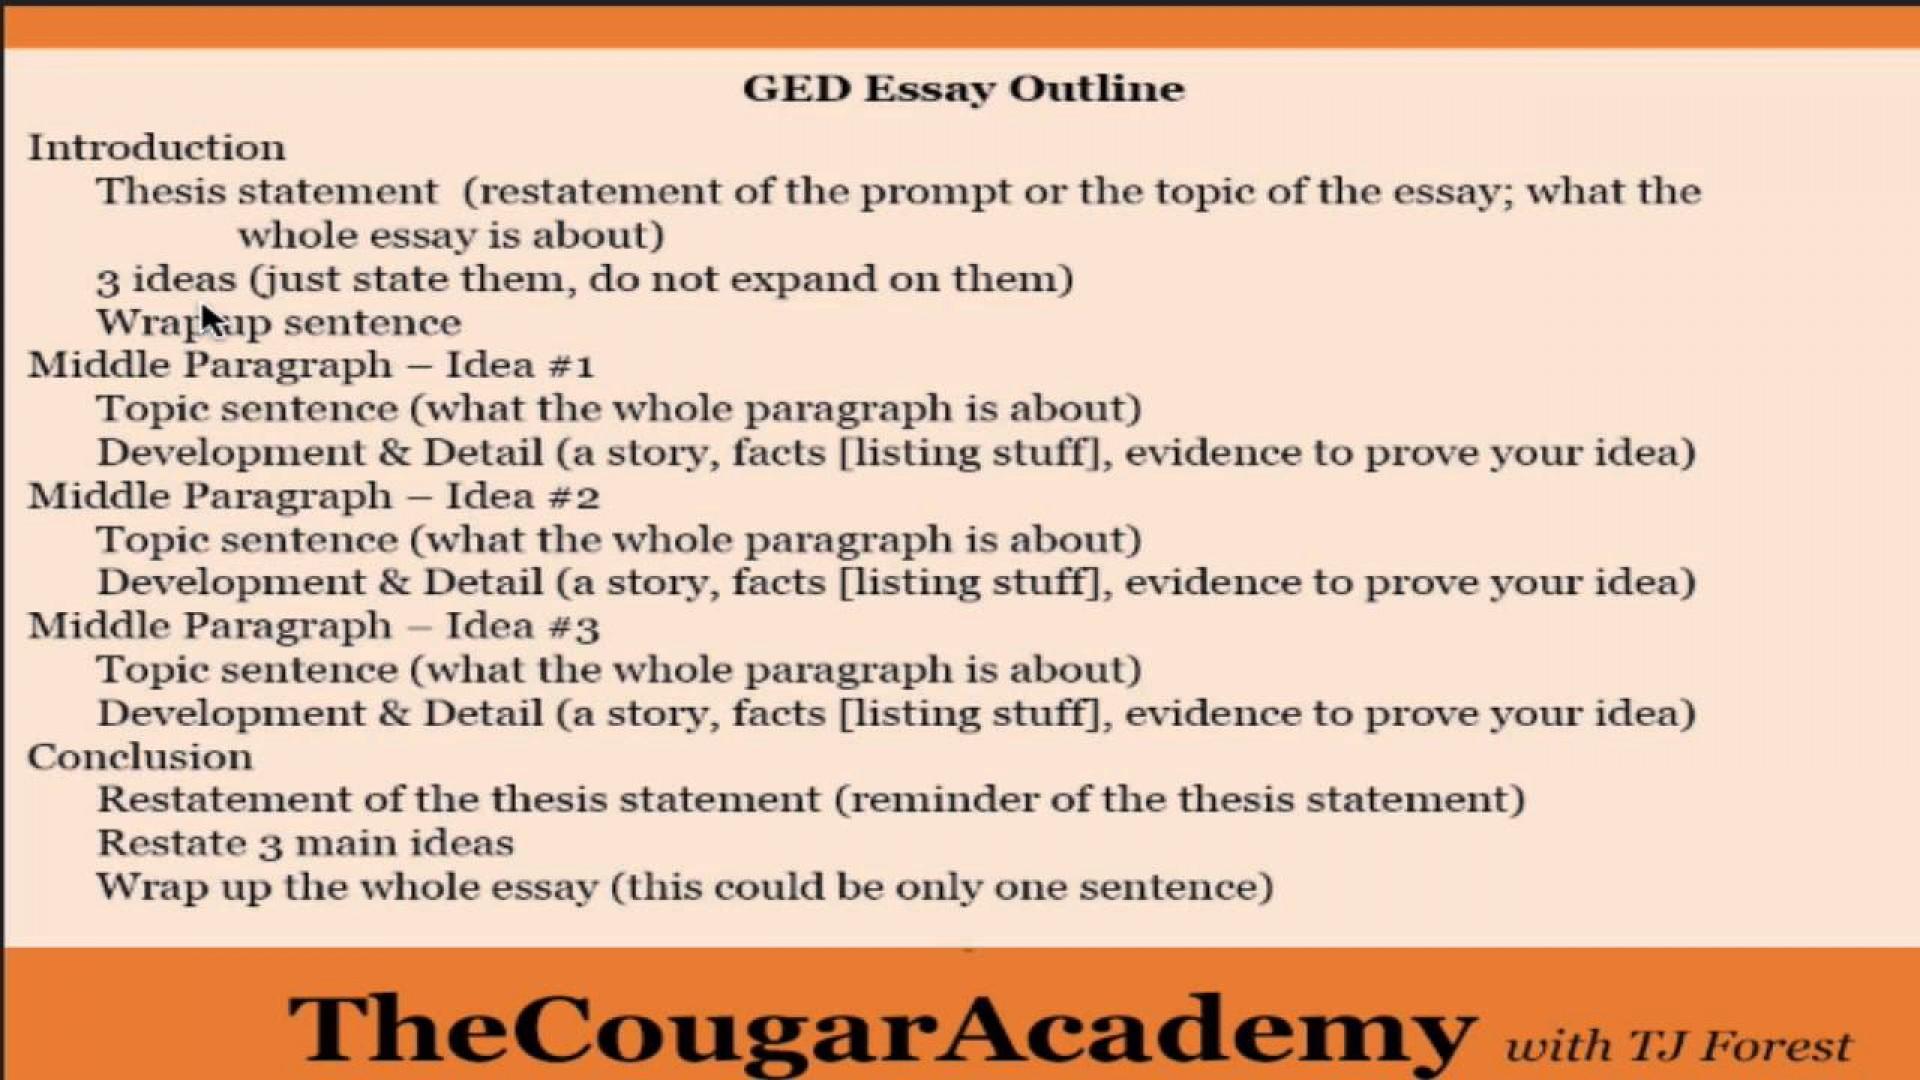 002 How To Write Ged Essay Example Thatsnotus